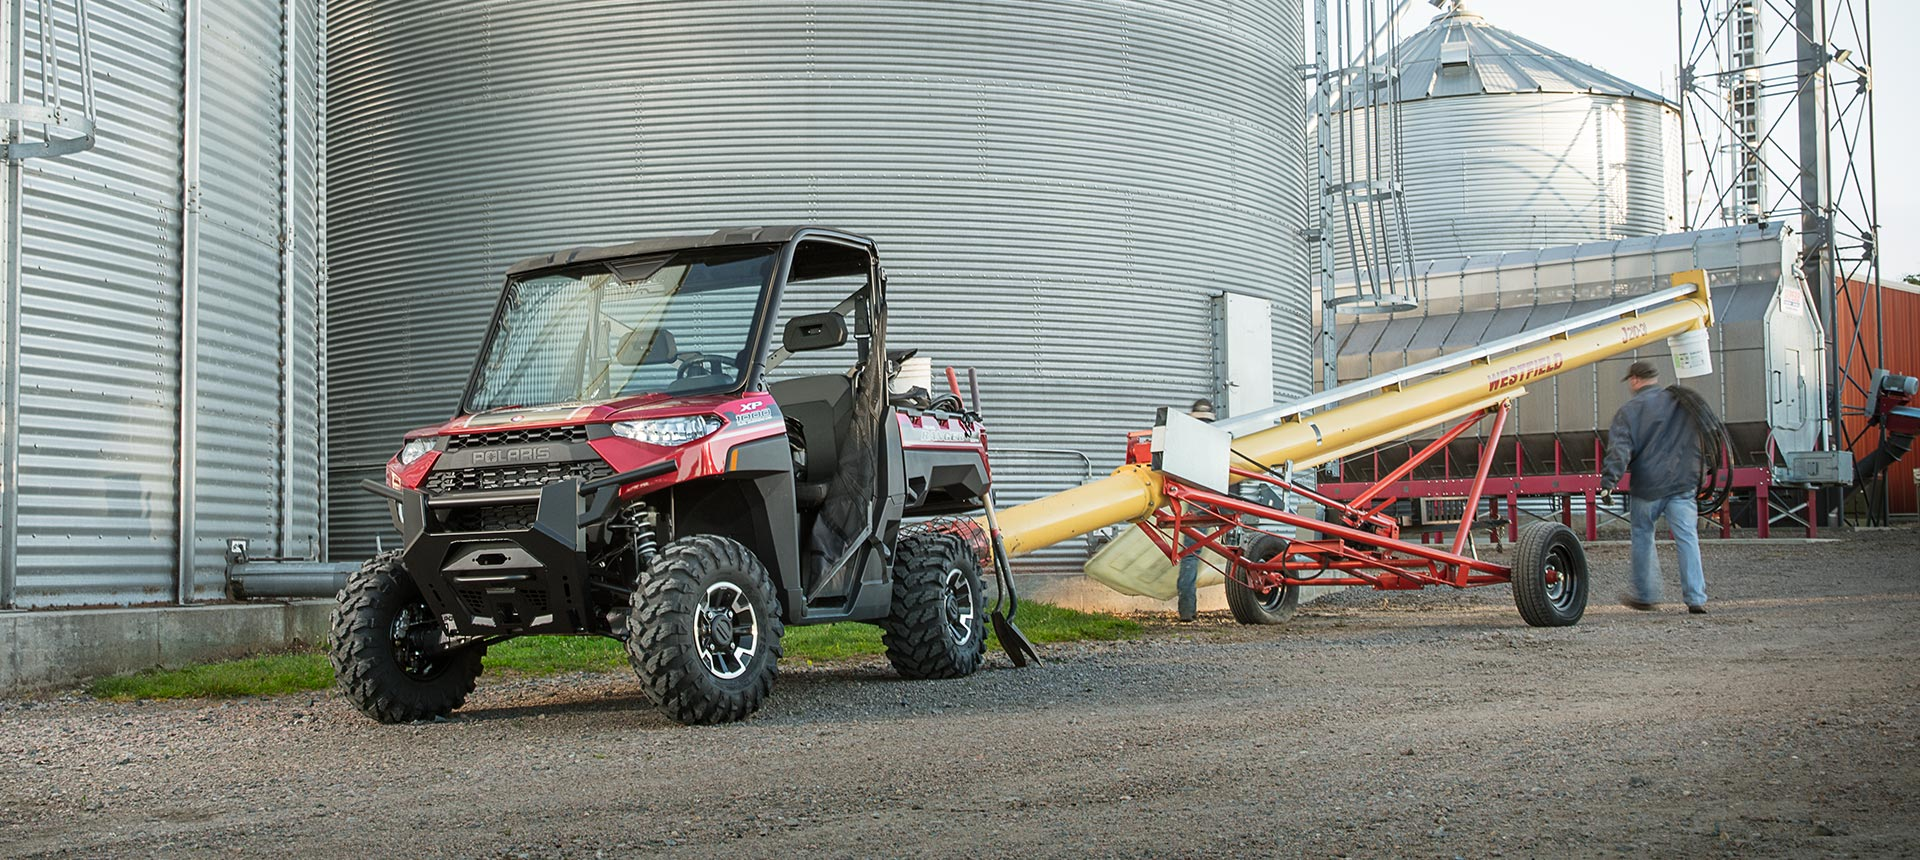 2019 Polaris Ranger XP 1000 EPS in Estill, South Carolina - Photo 4